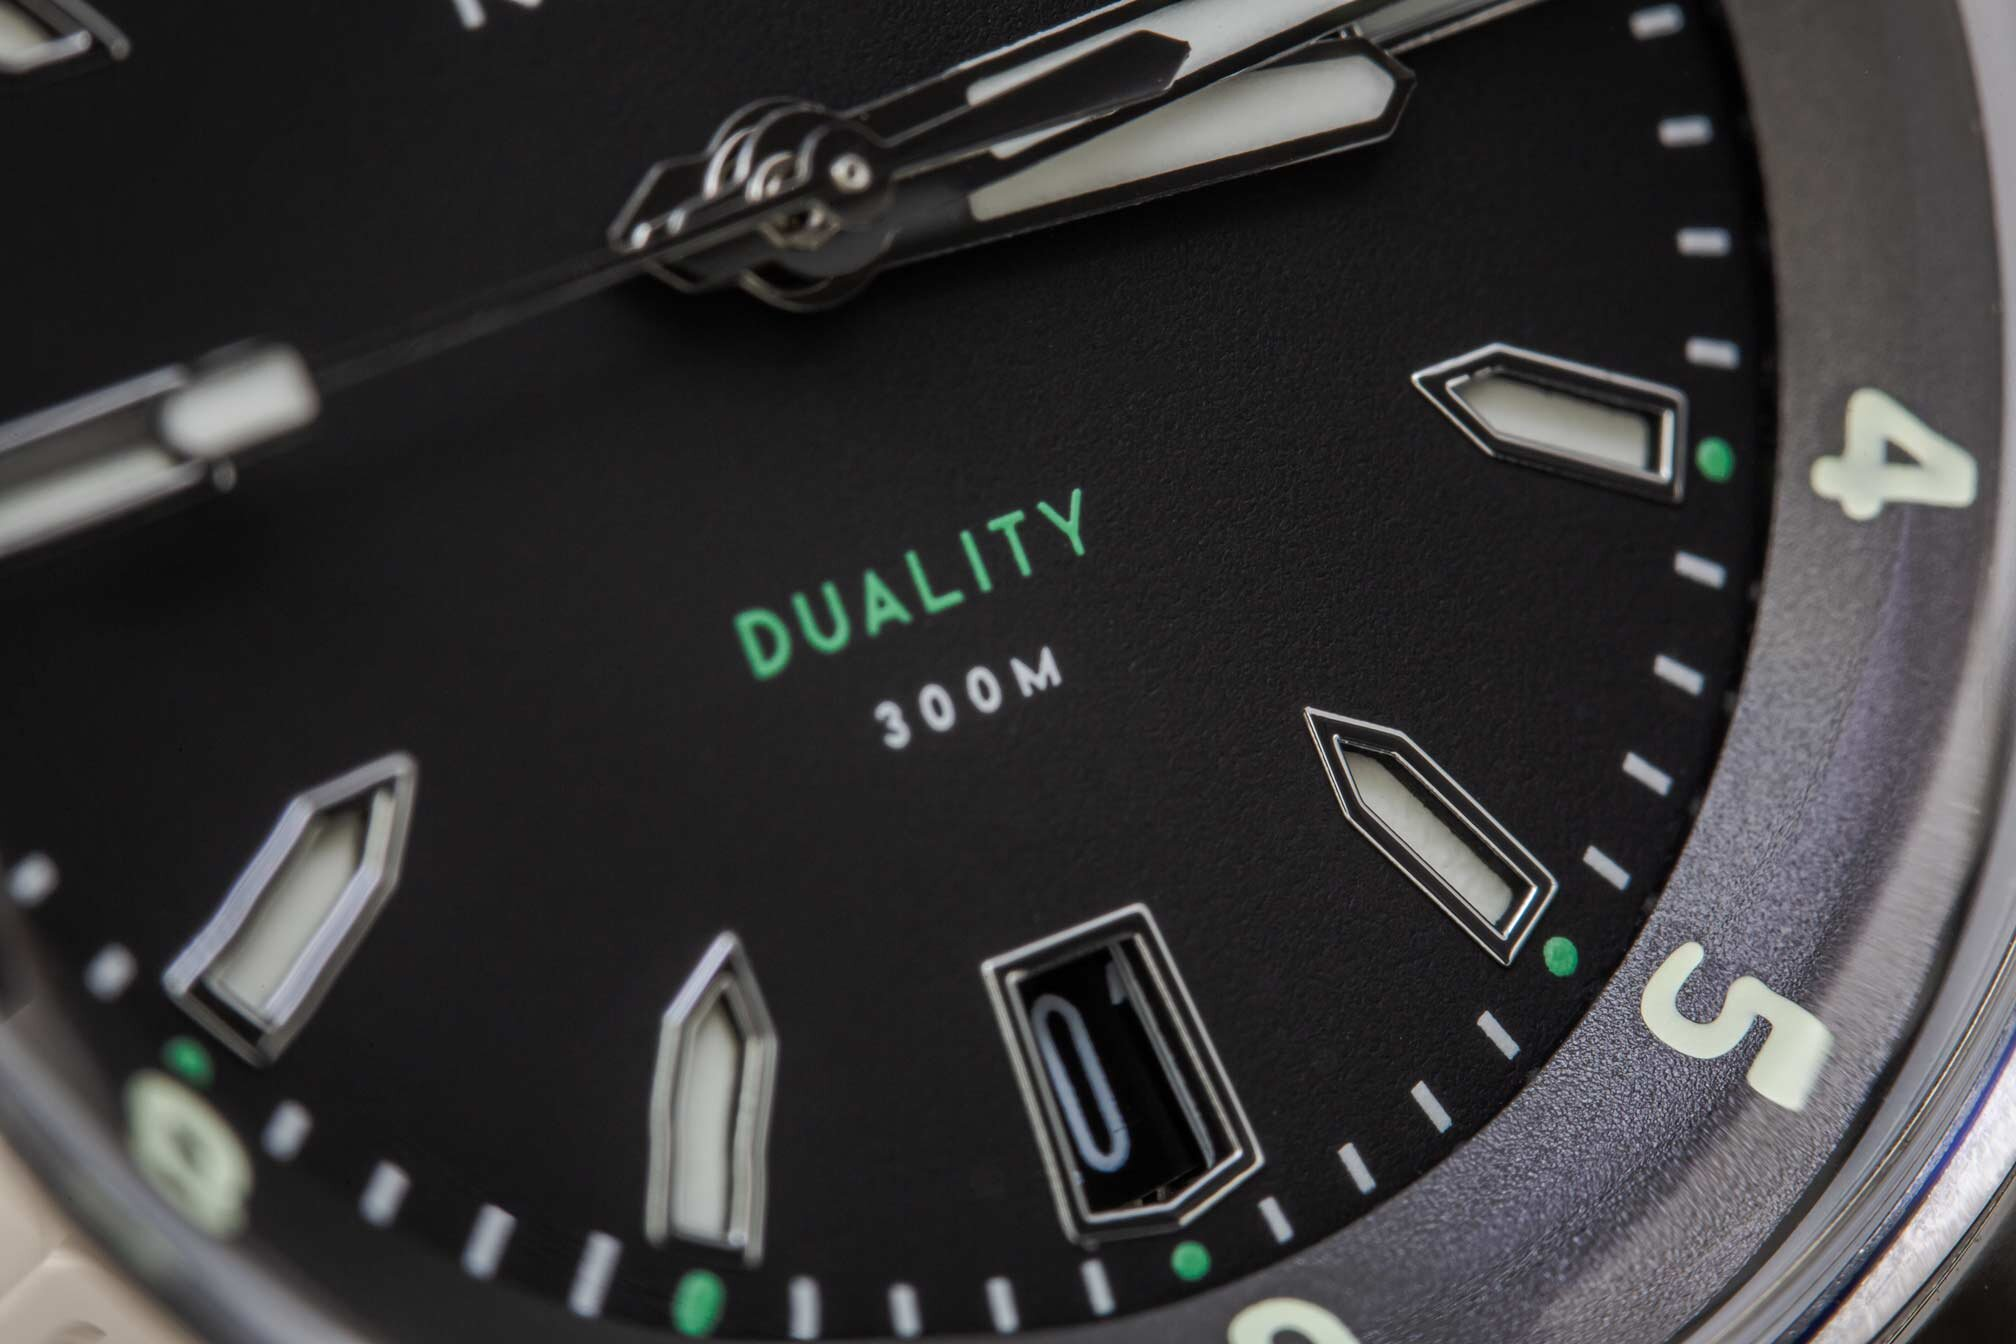 The hybrid dial - a construction that benefits from the night time visibility of a sandwich dial and daytime visibility of an applied dial.